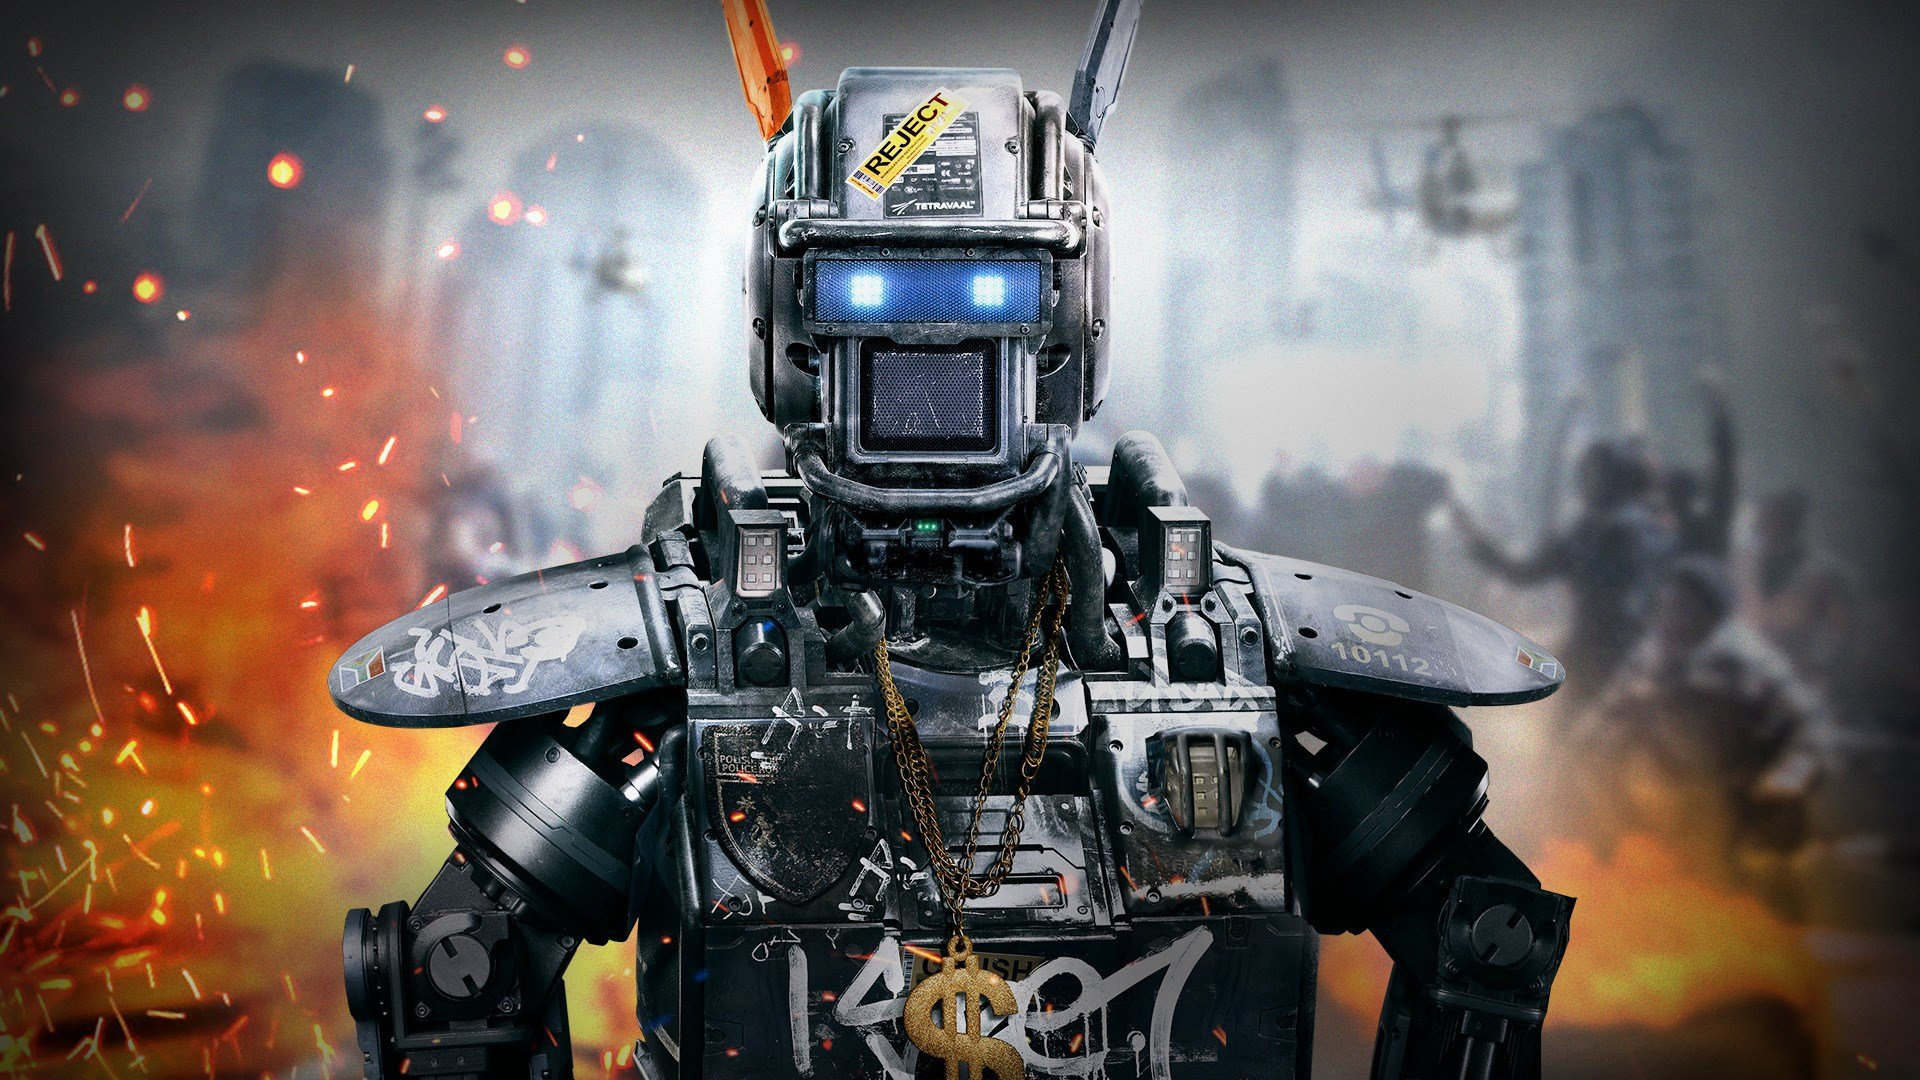 Chappie Wallpapers and Background Images   stmednet 1920x1080